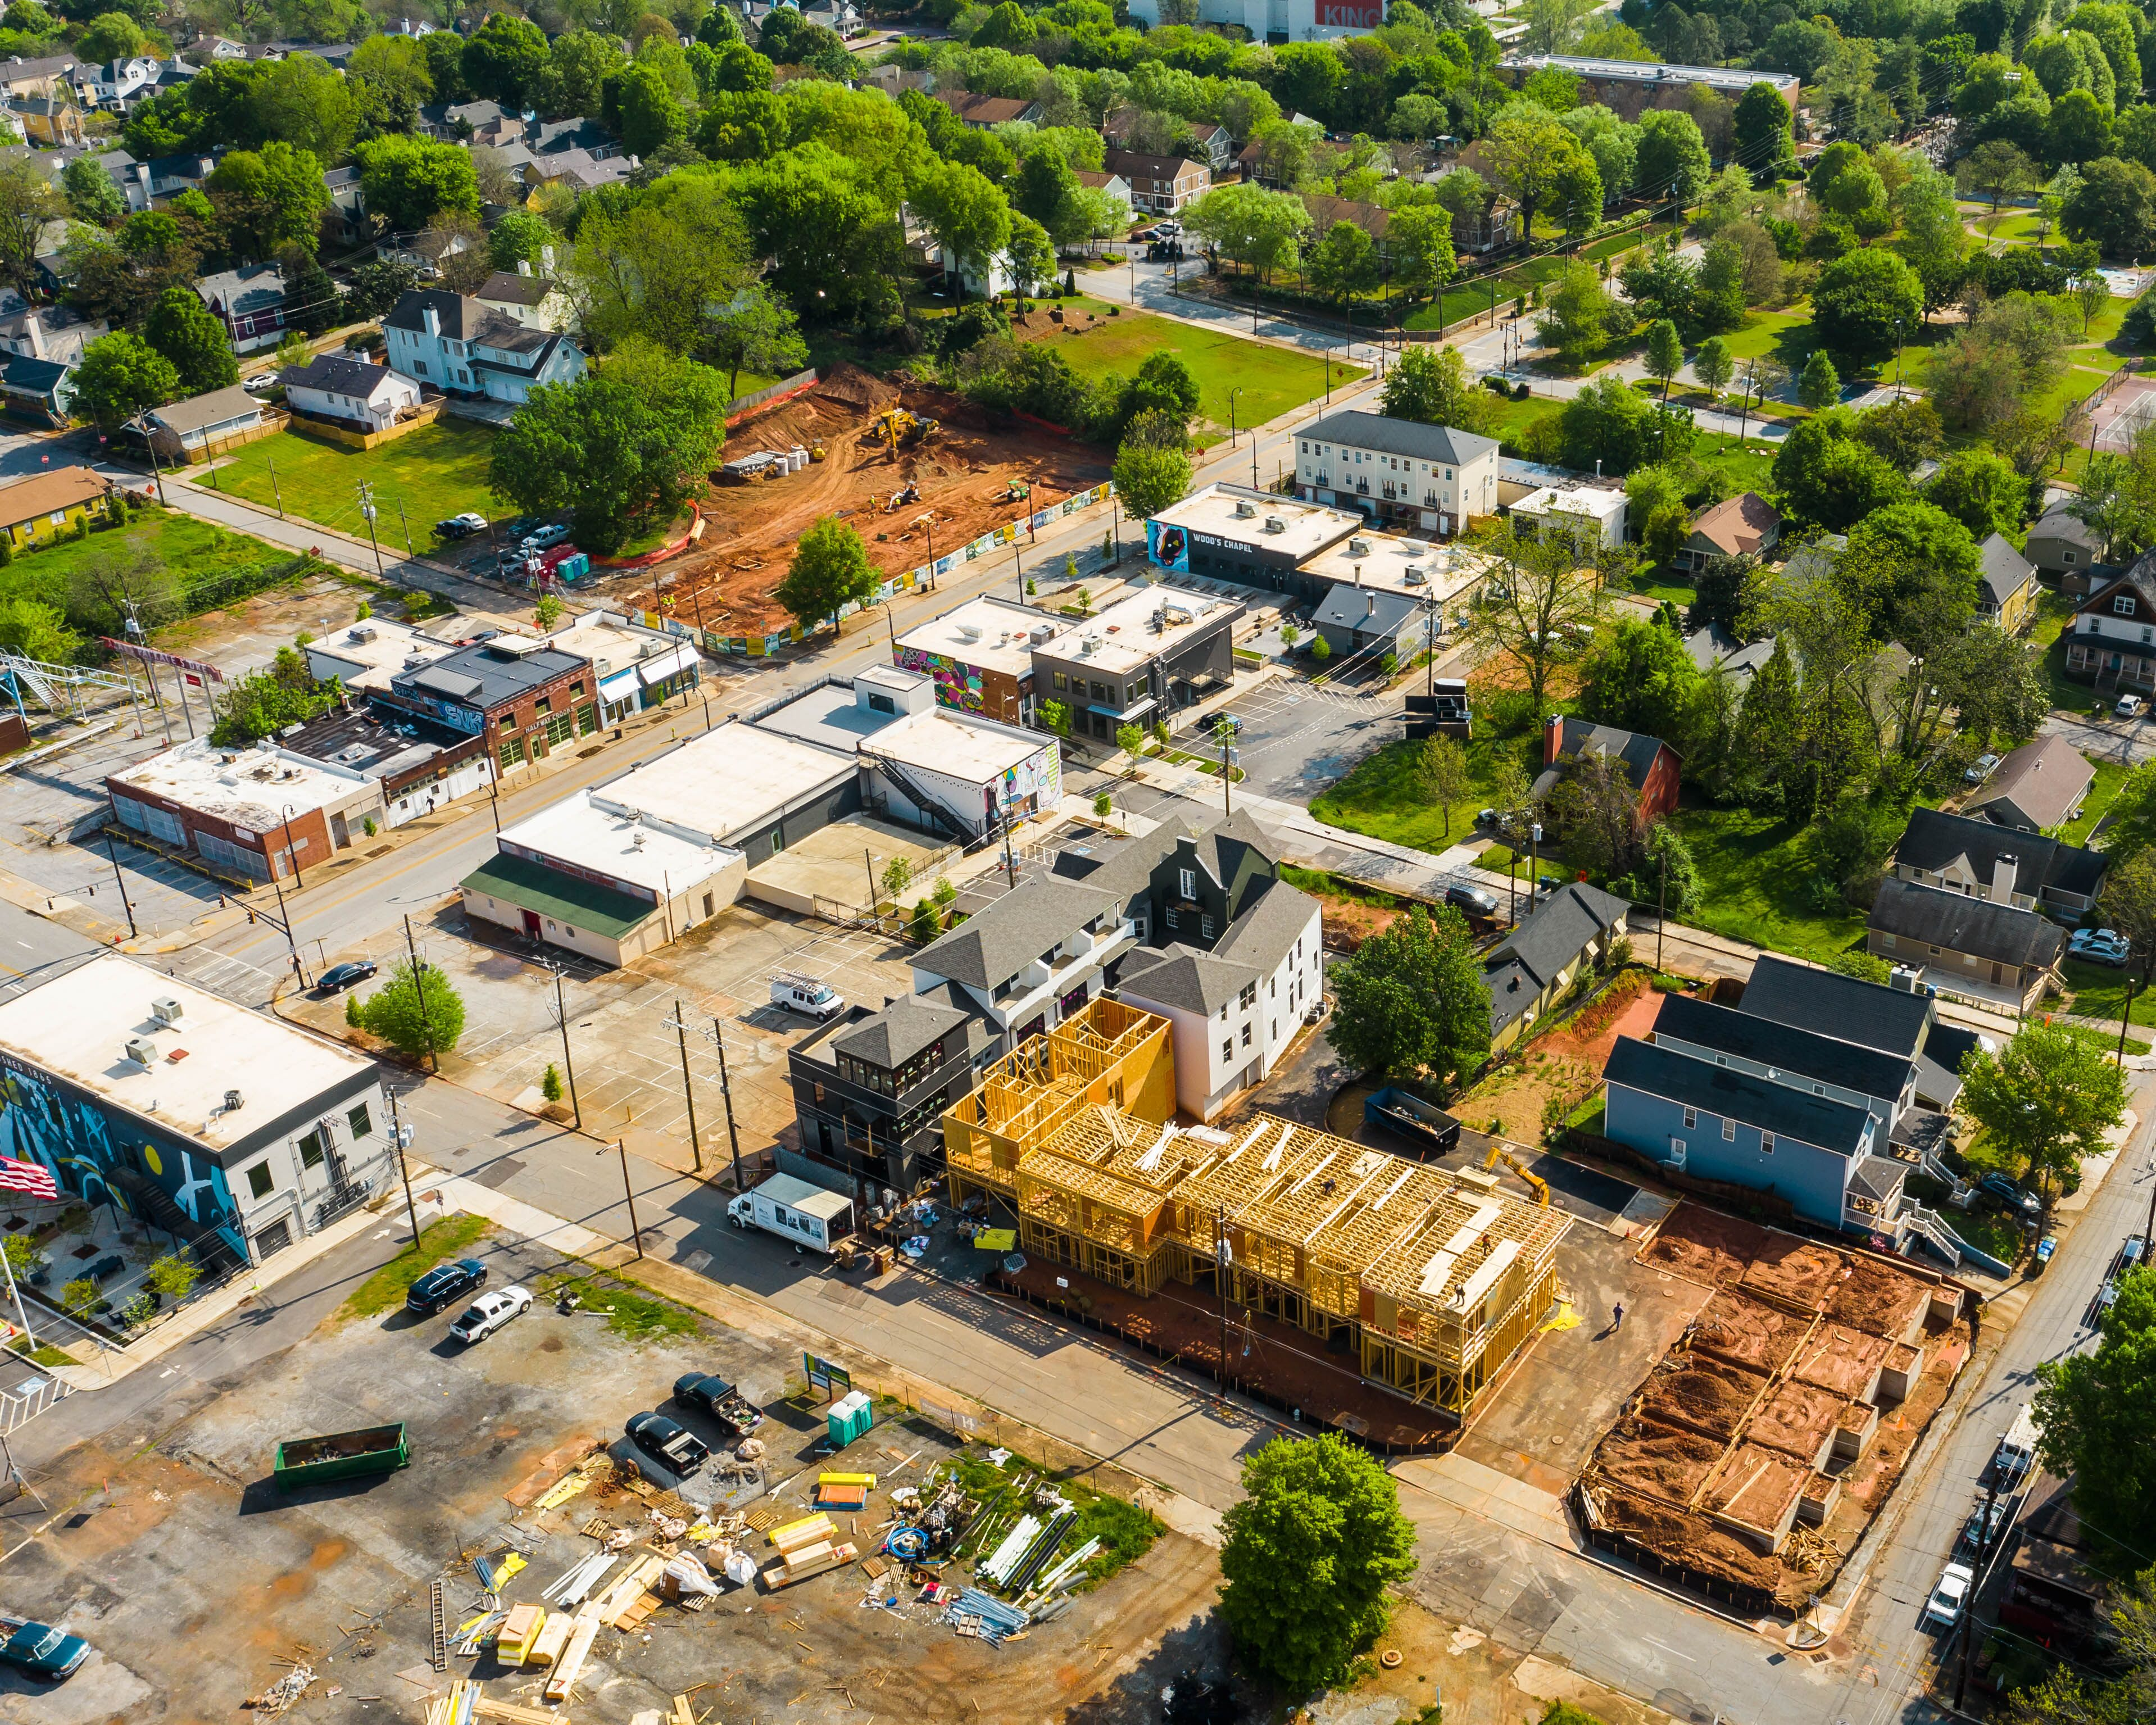 An aerial photo of new development with large construction sites and homes and buildings.